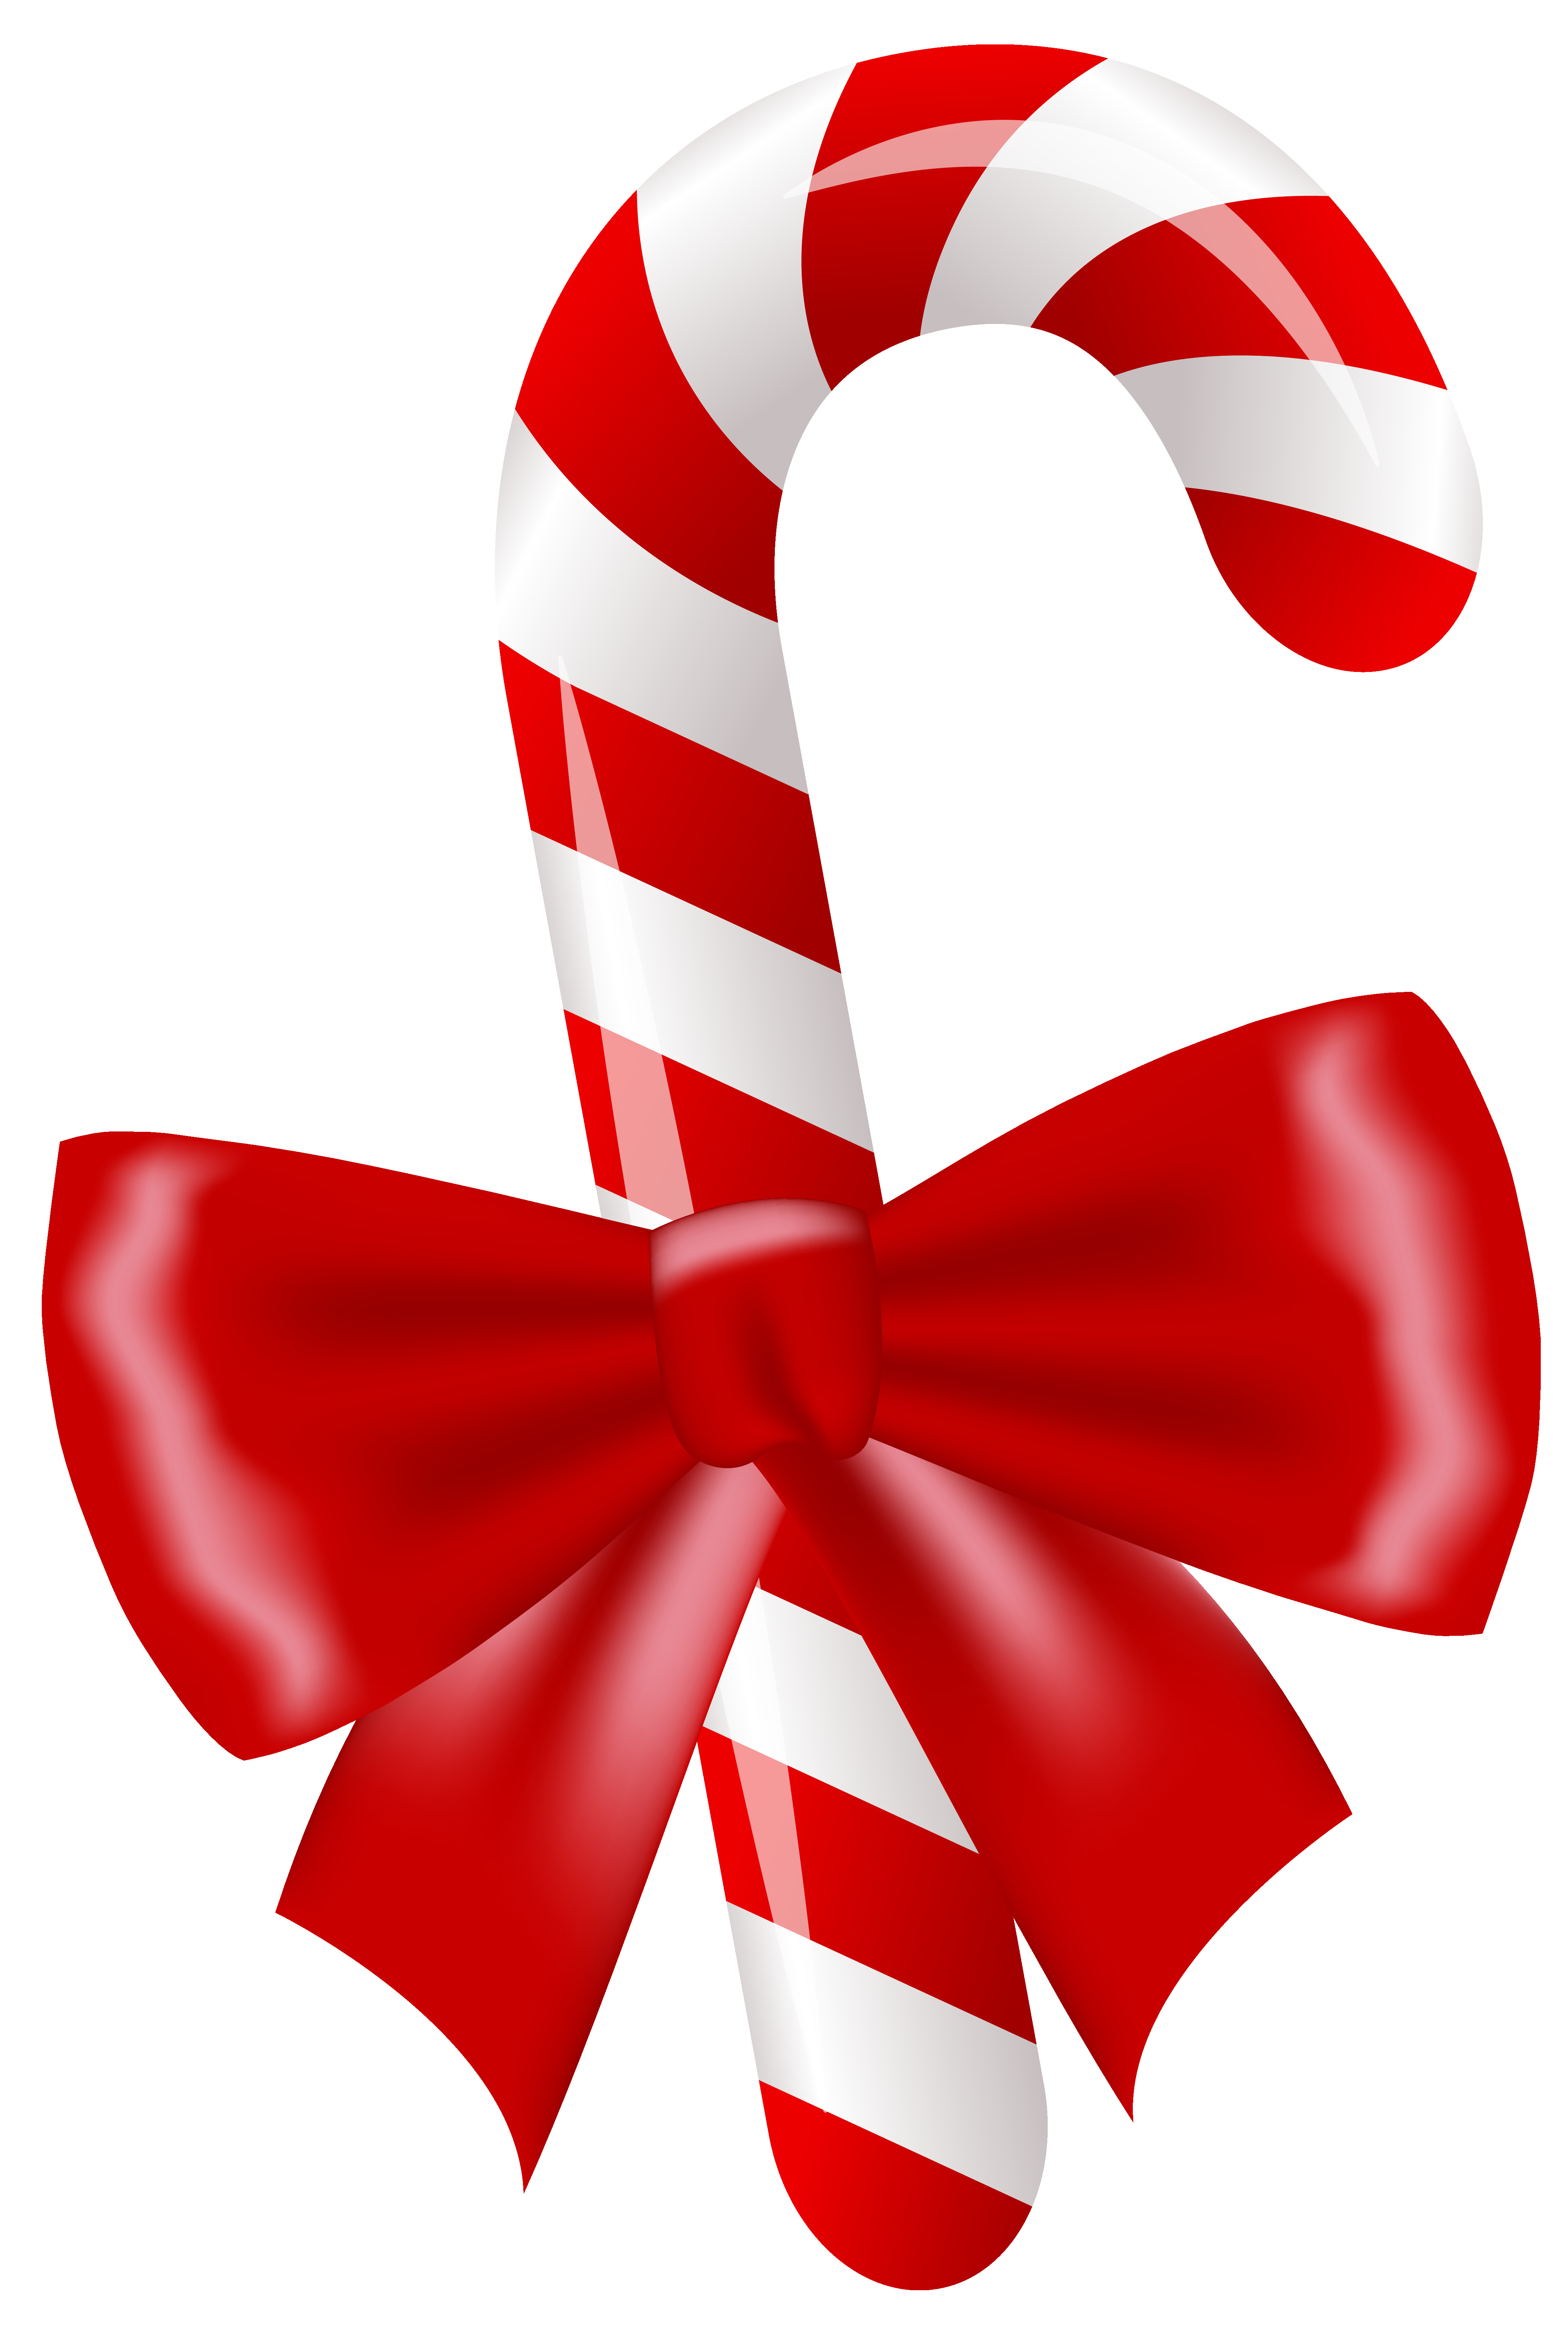 4201x6247 Black And White Candy Cane Free Clip Art Outstanding Canes